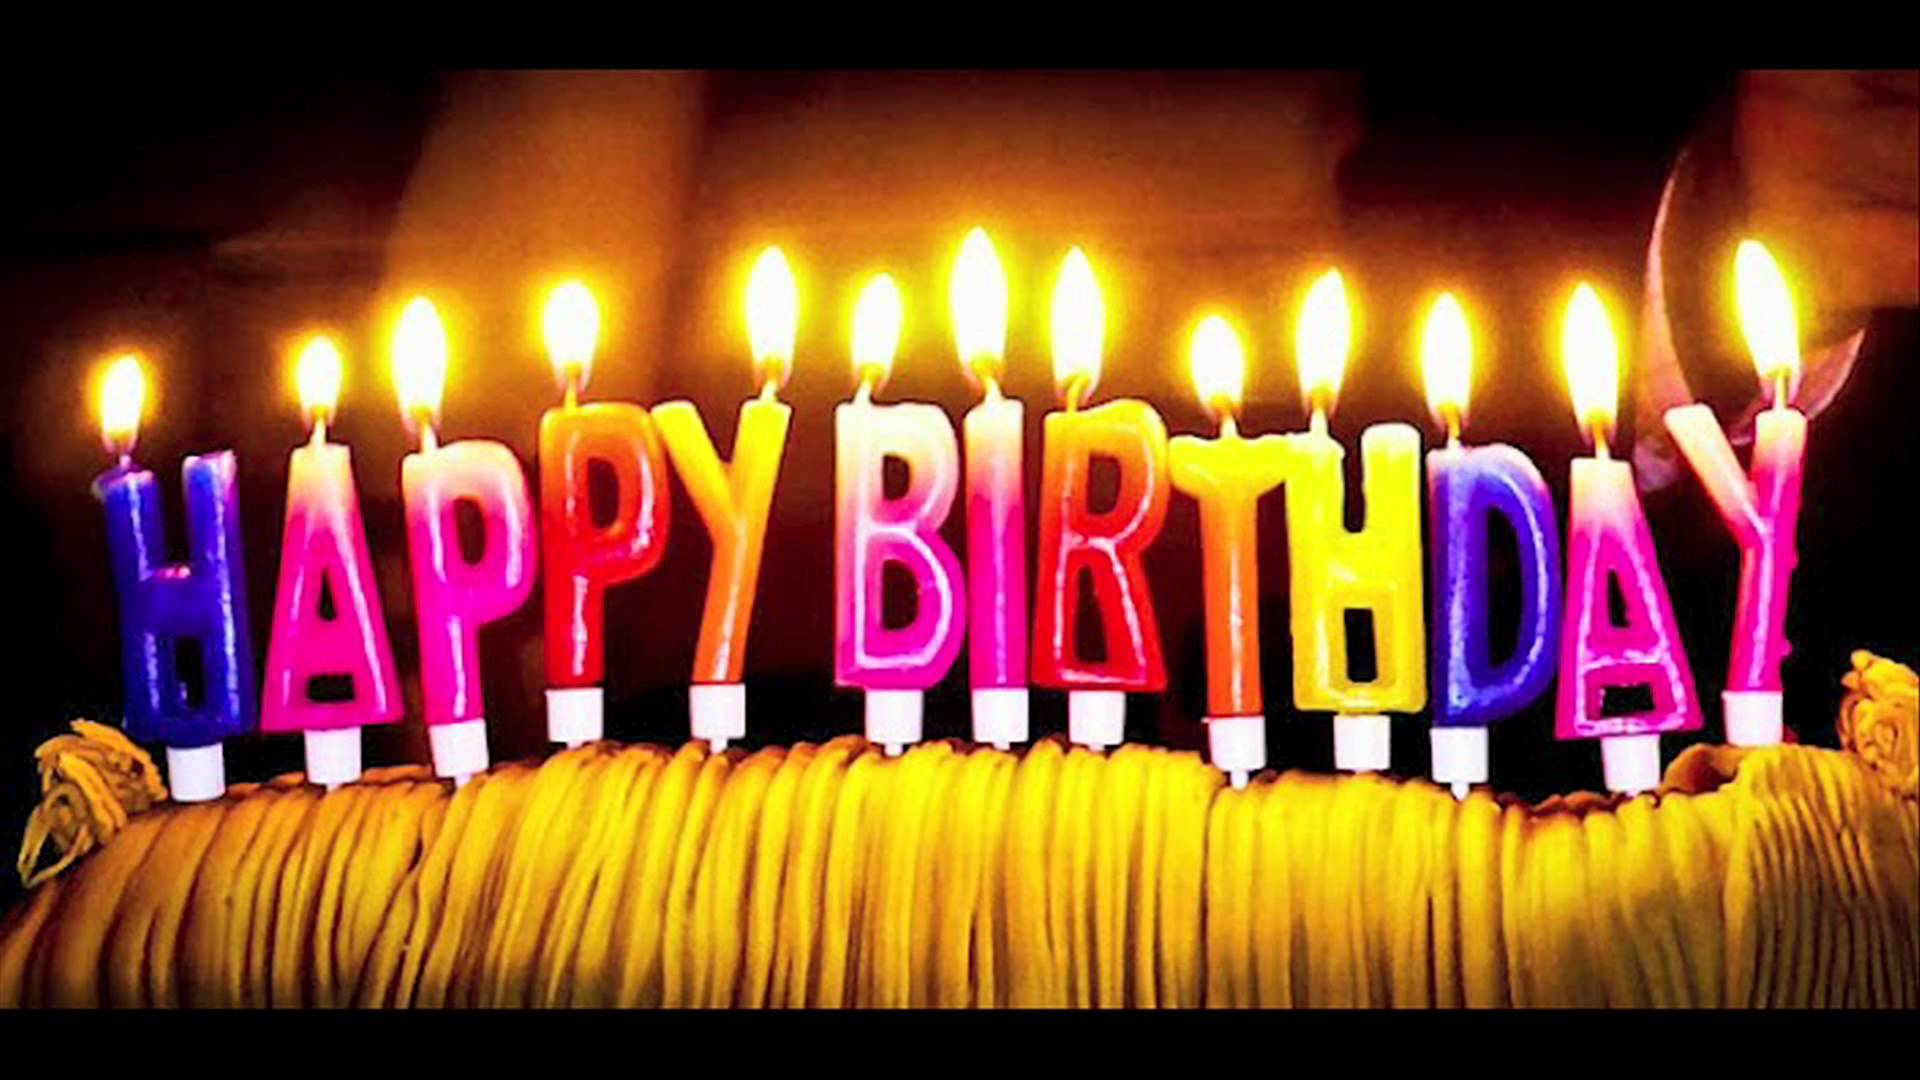 happy birthday hd images download ; 38009179-happy-birthday-hd-images